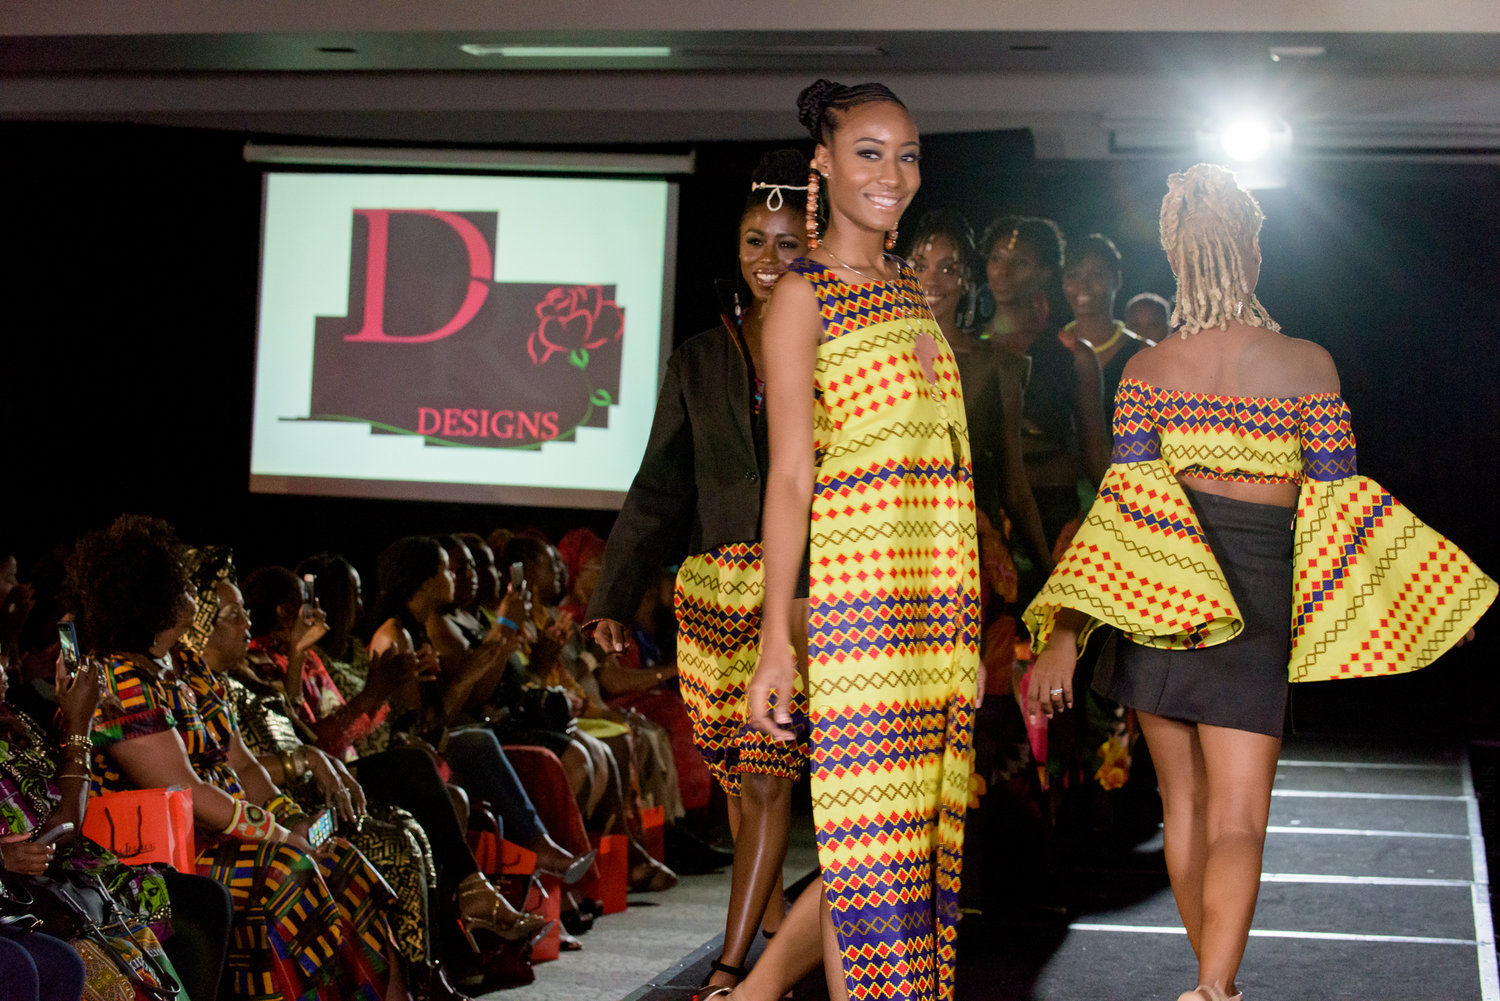 Fbf Ankara Miami Fashion Week 2018 Deborah Rose Designs Leighton Dacosta Miami Fashion Photographer Leighton Dacosta Photographer